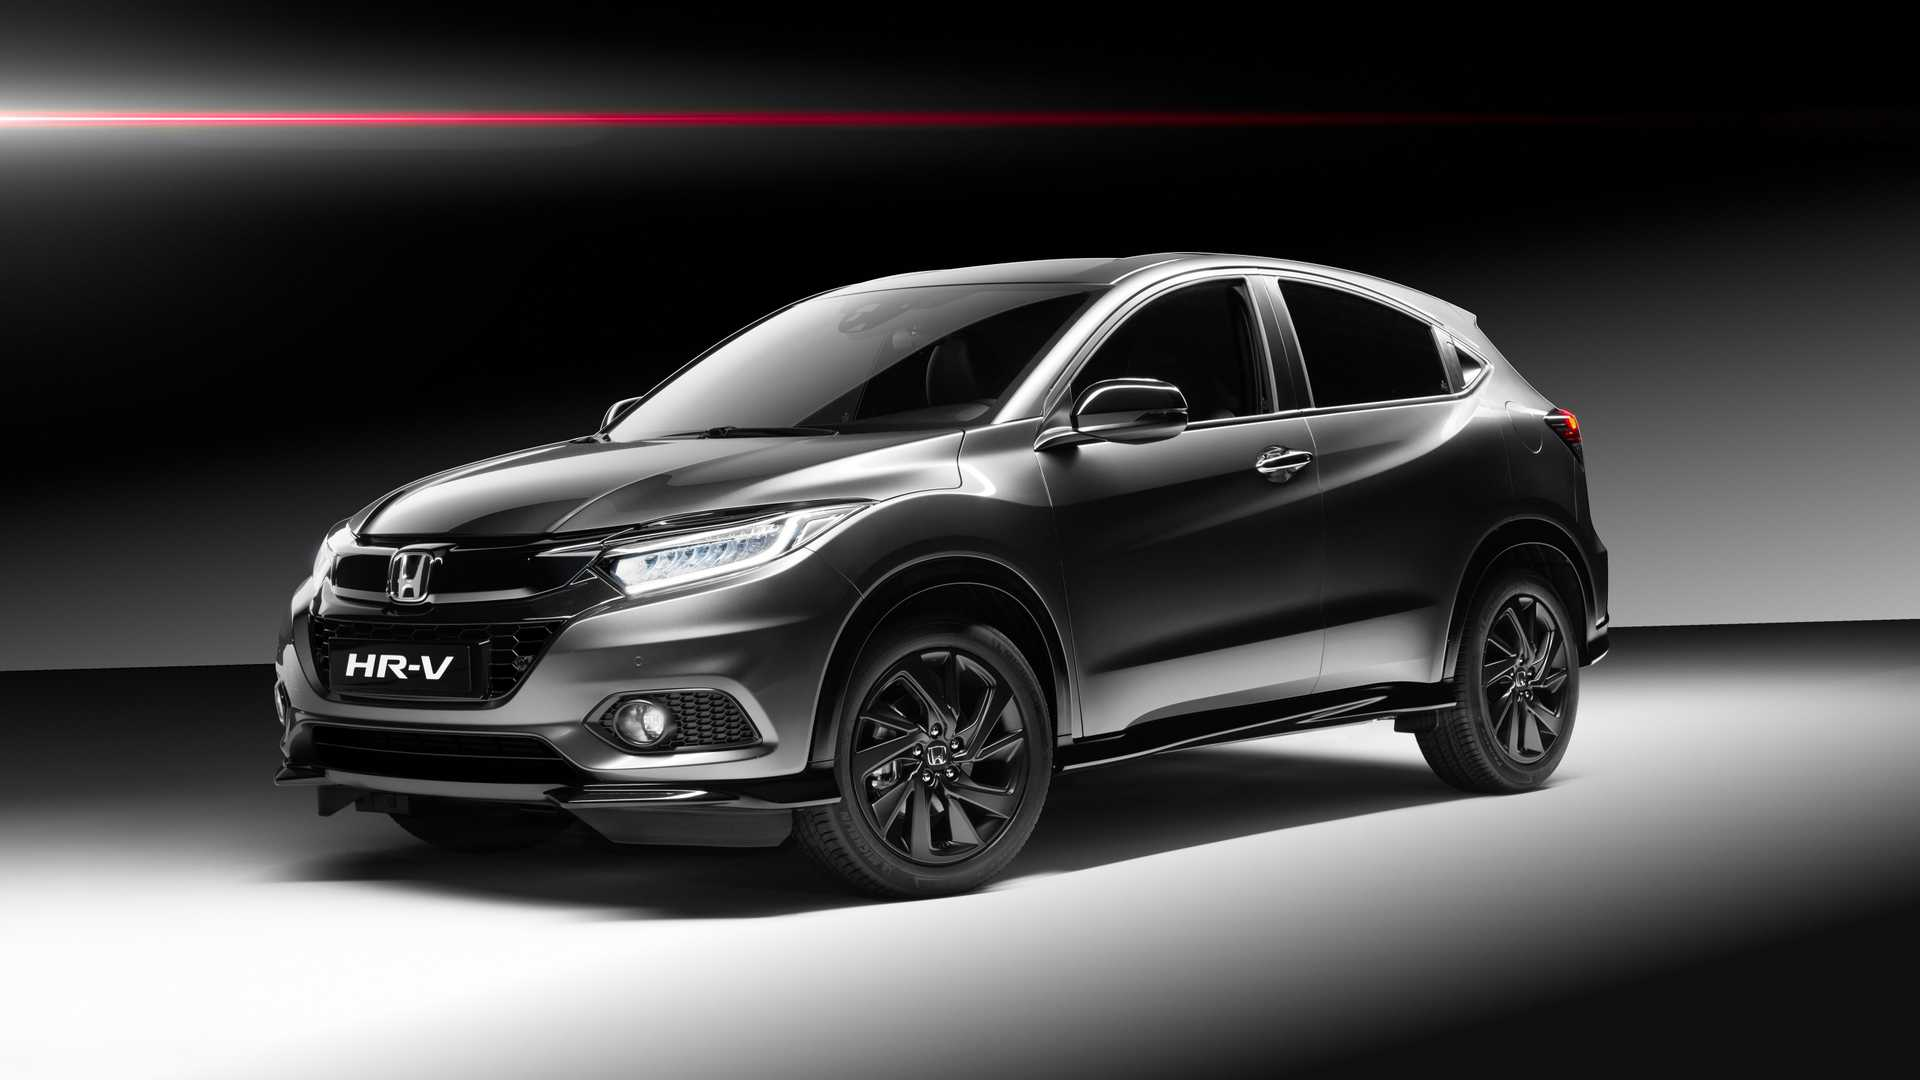 36 The Best 2019 Honda Hrv Rumors Release Date